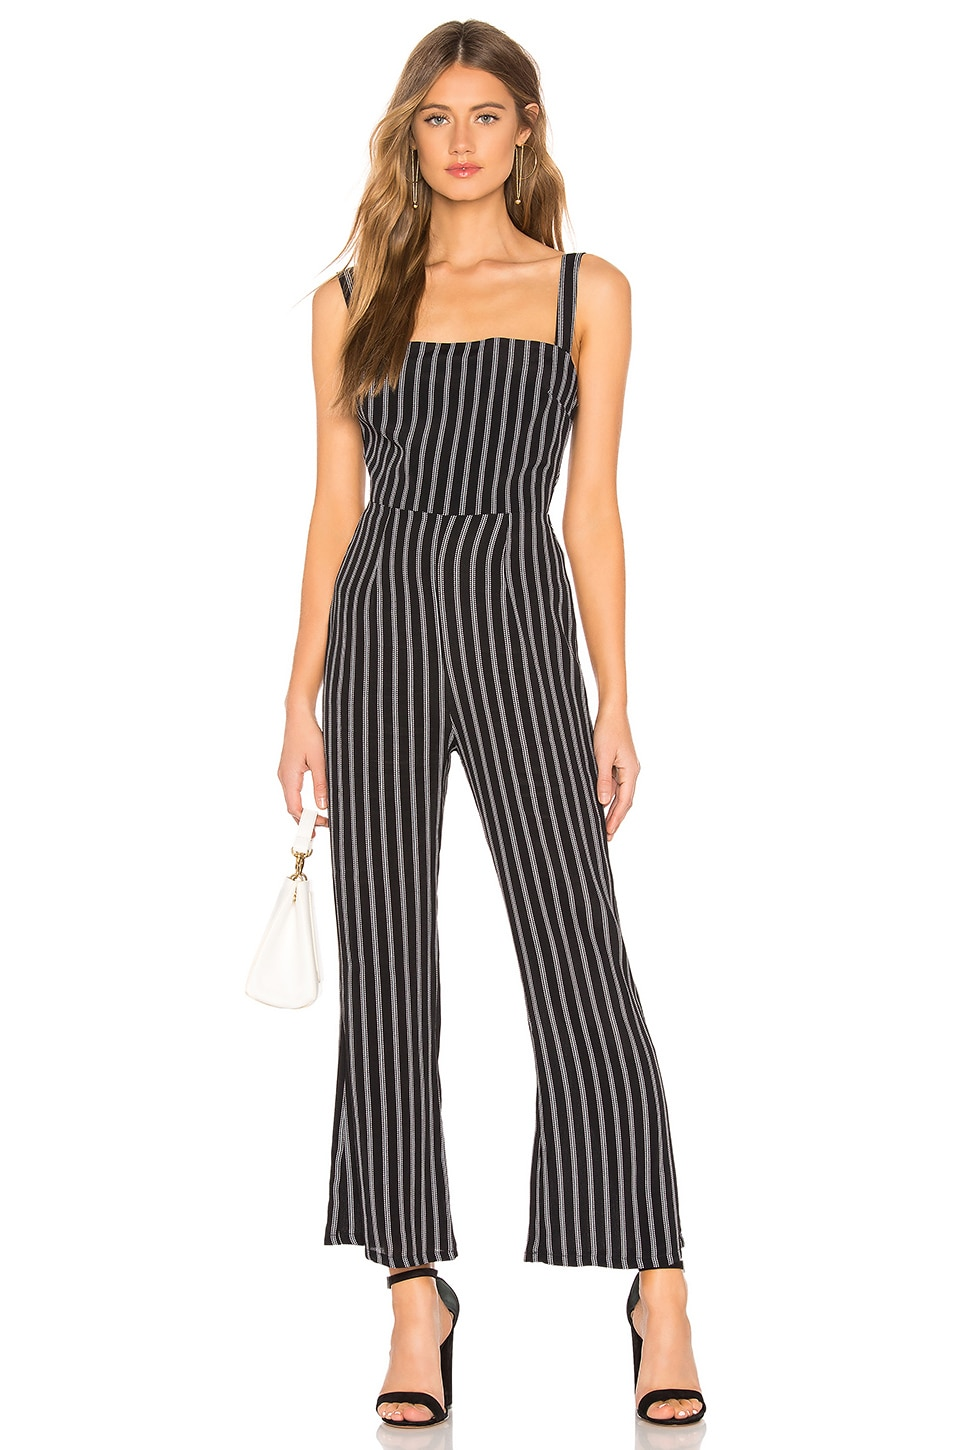 FLYNN SKYE Lexi Jumpsuit in Black Stripe